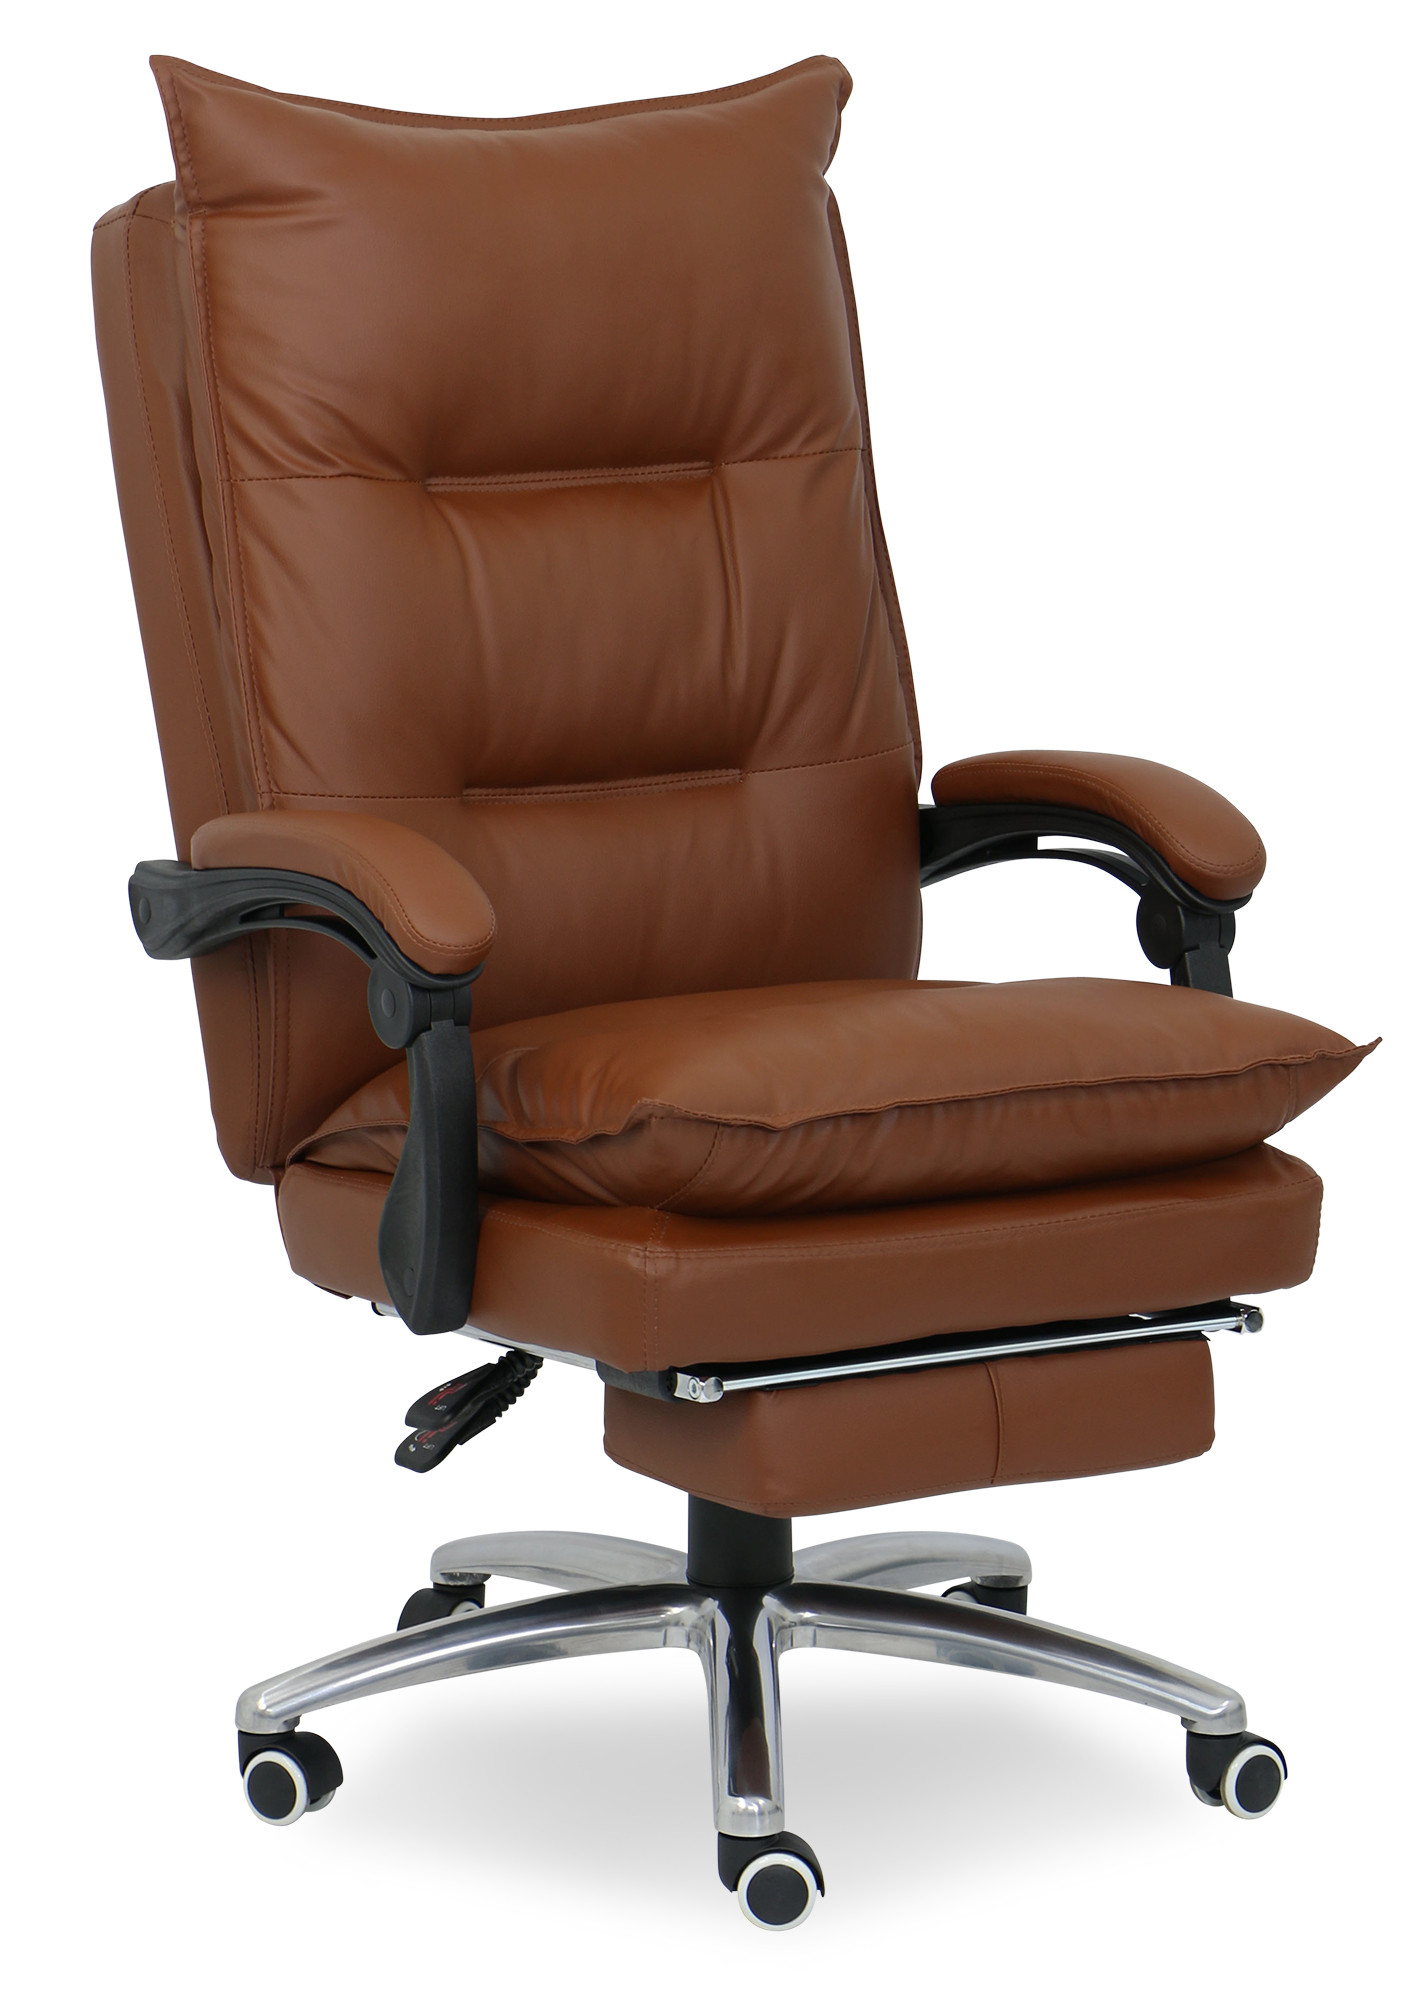 Deluxe pu executive office chair brown